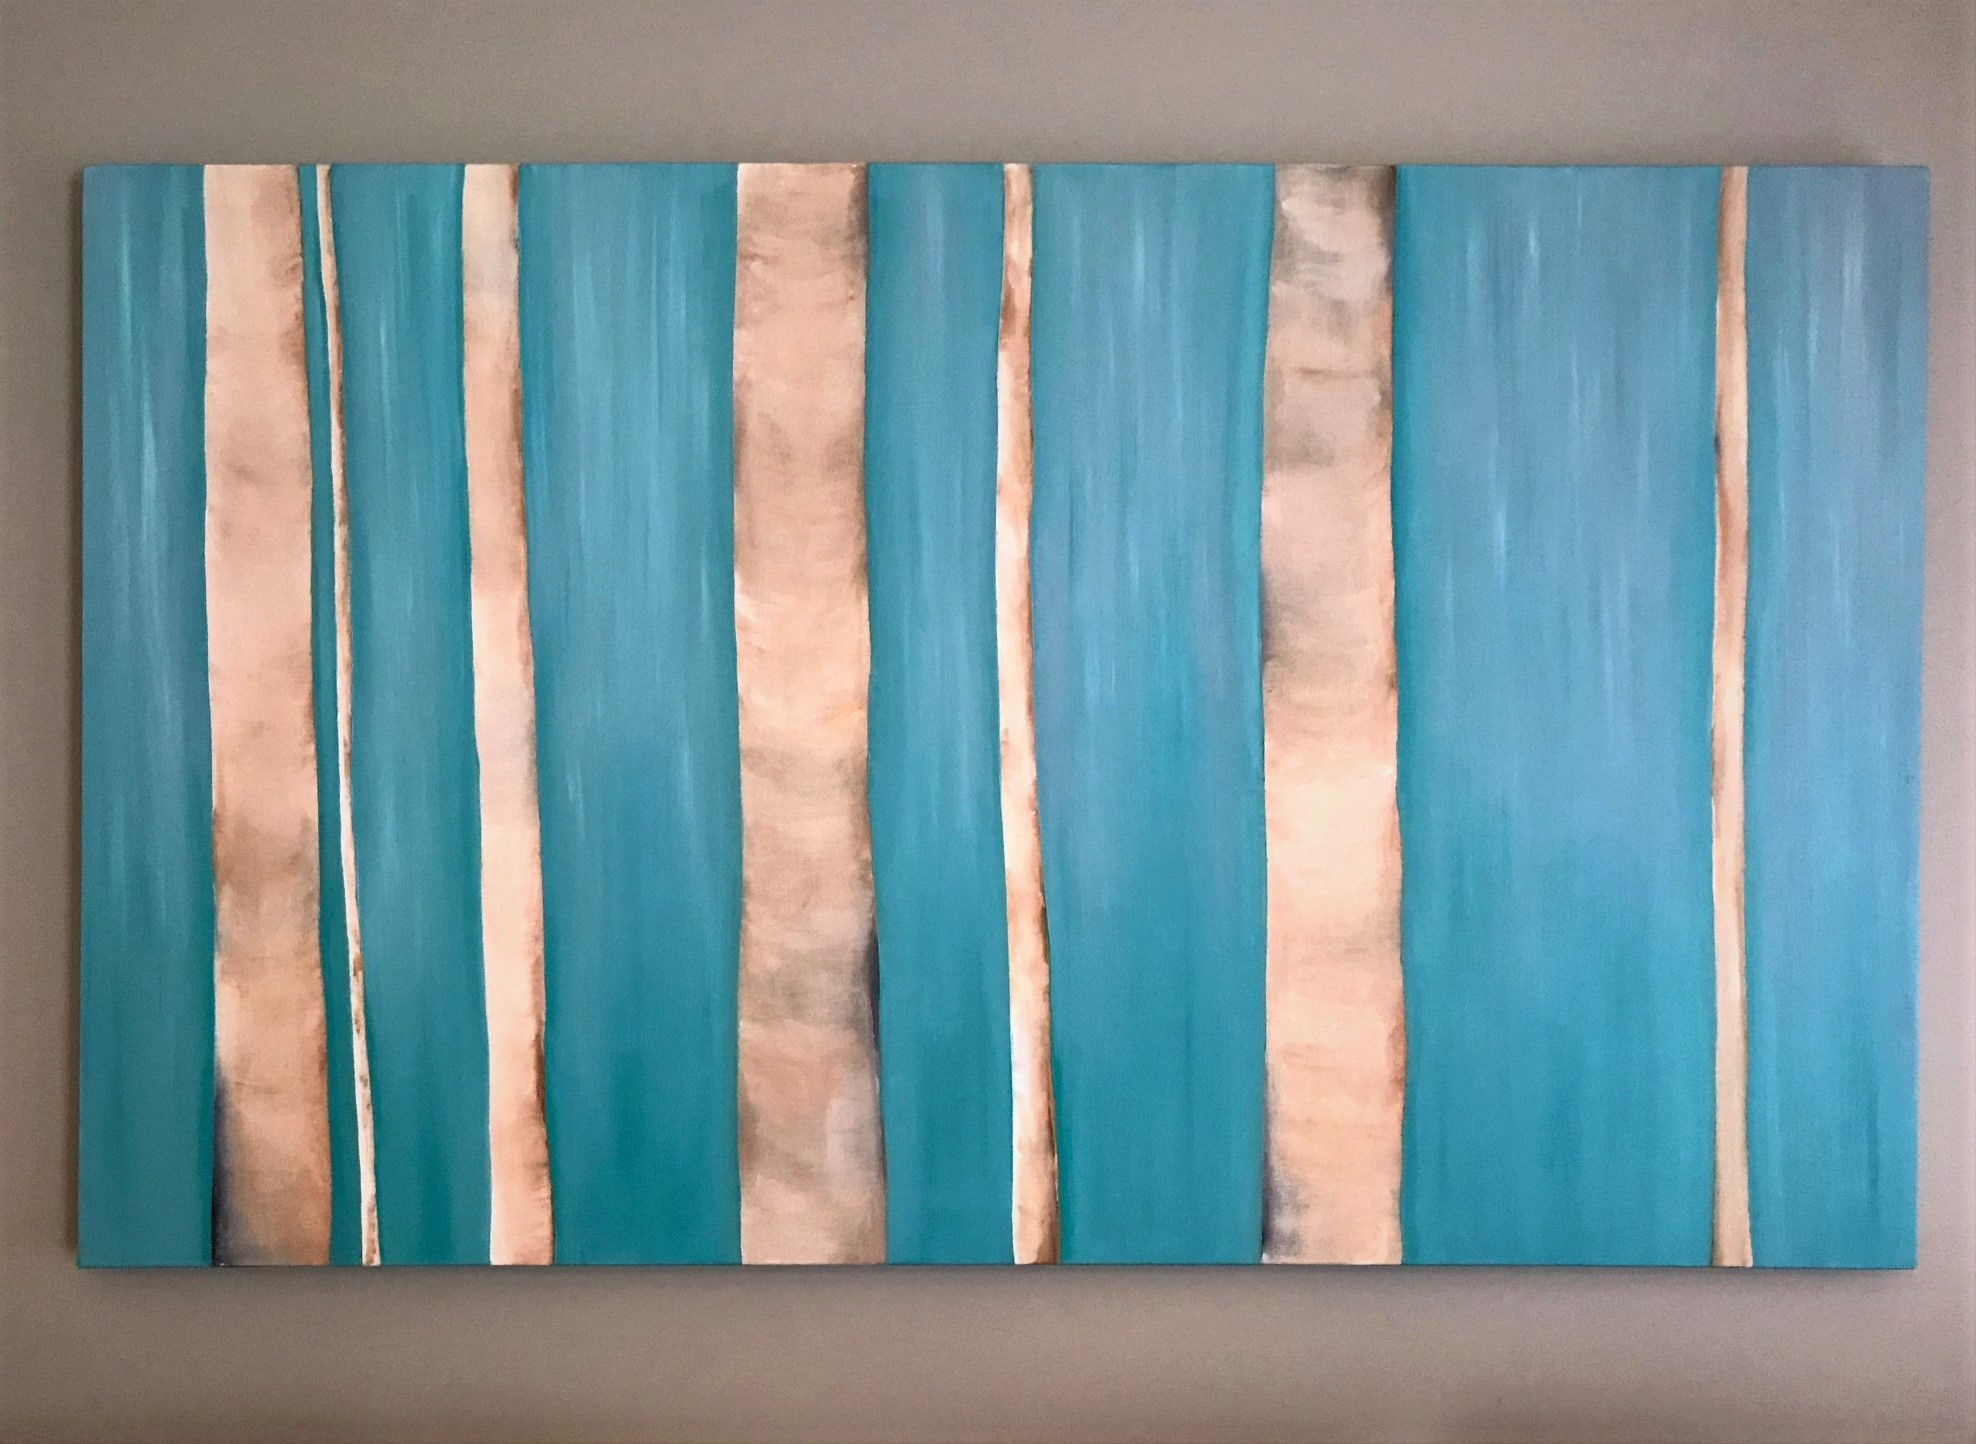 """Birch Forest   2009  36"""" x 60"""" (91.4 x 152.4 cm)  oil on canvas    Price available upon request"""